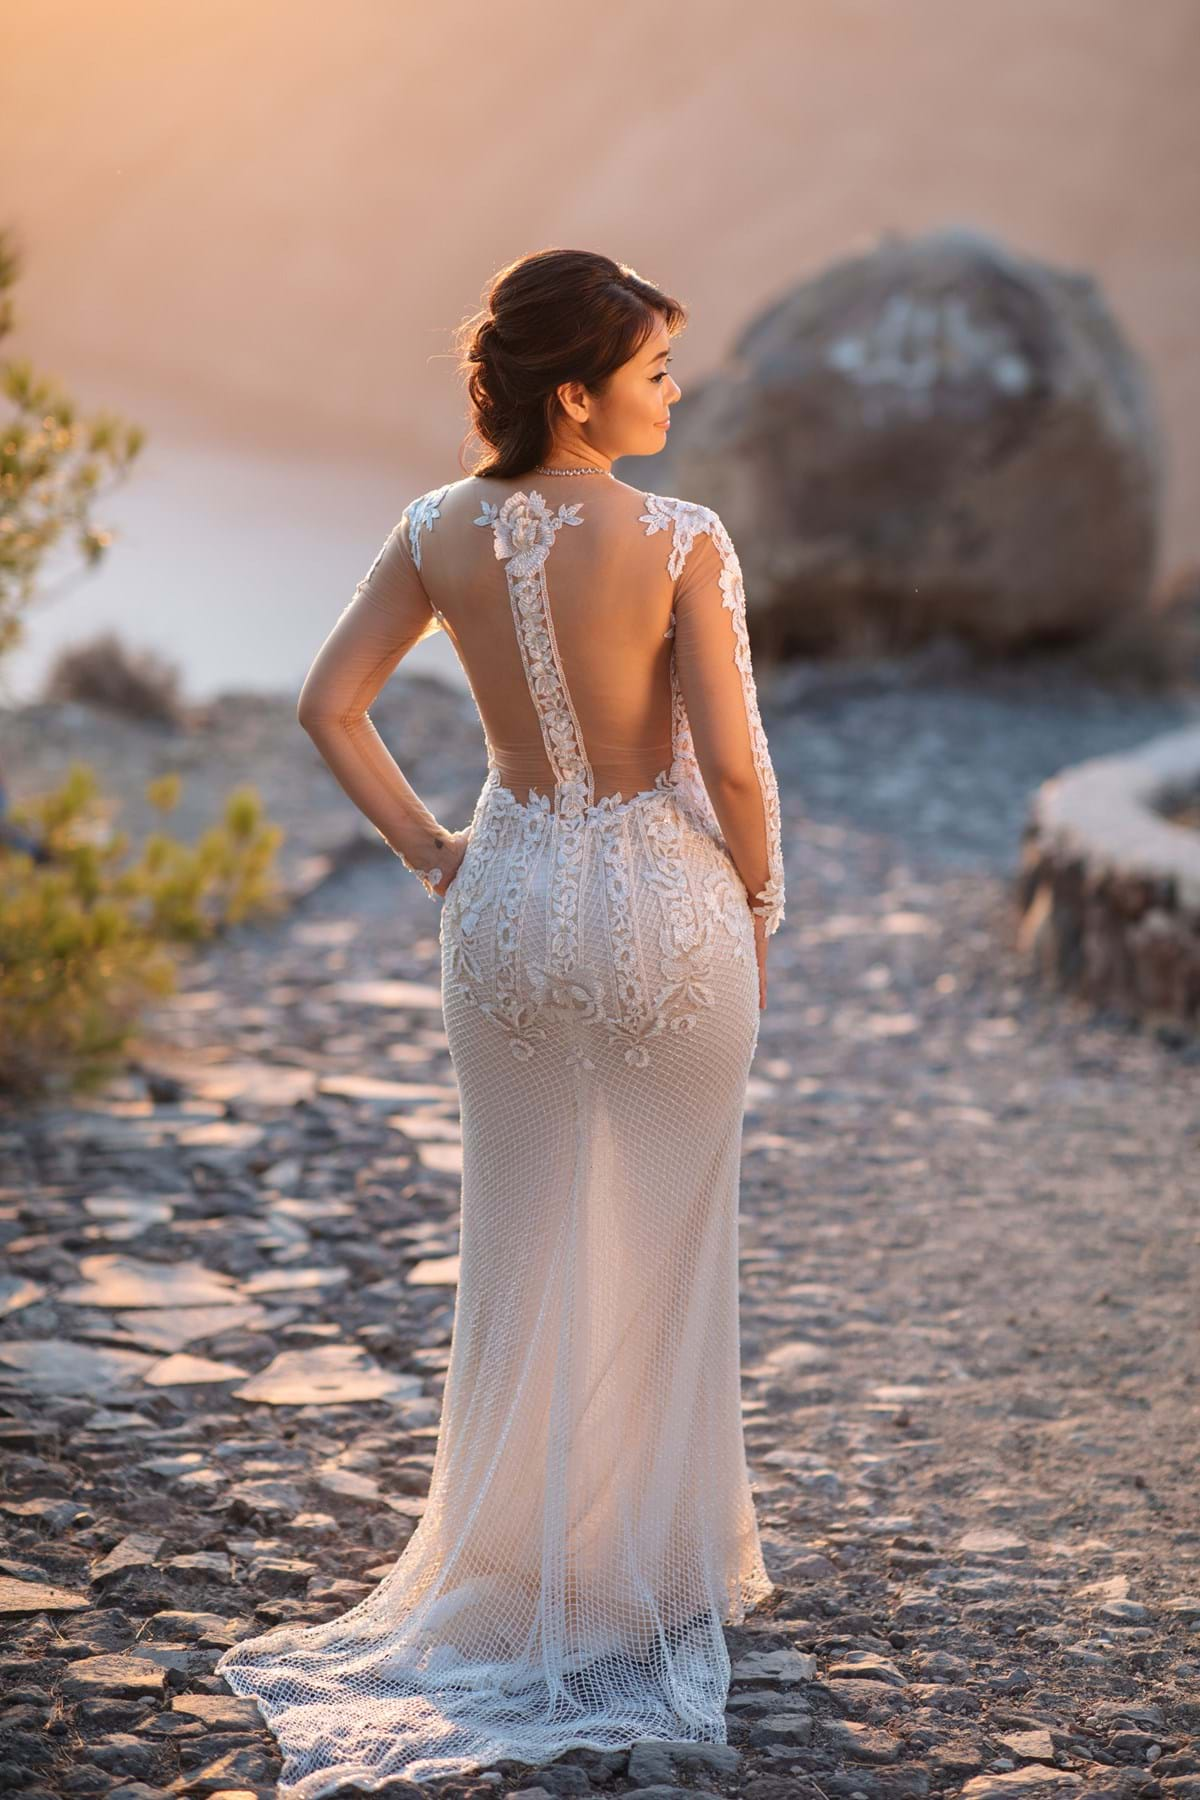 Destination Wedding Dress Inspiration for a Summer Soiree in Greece